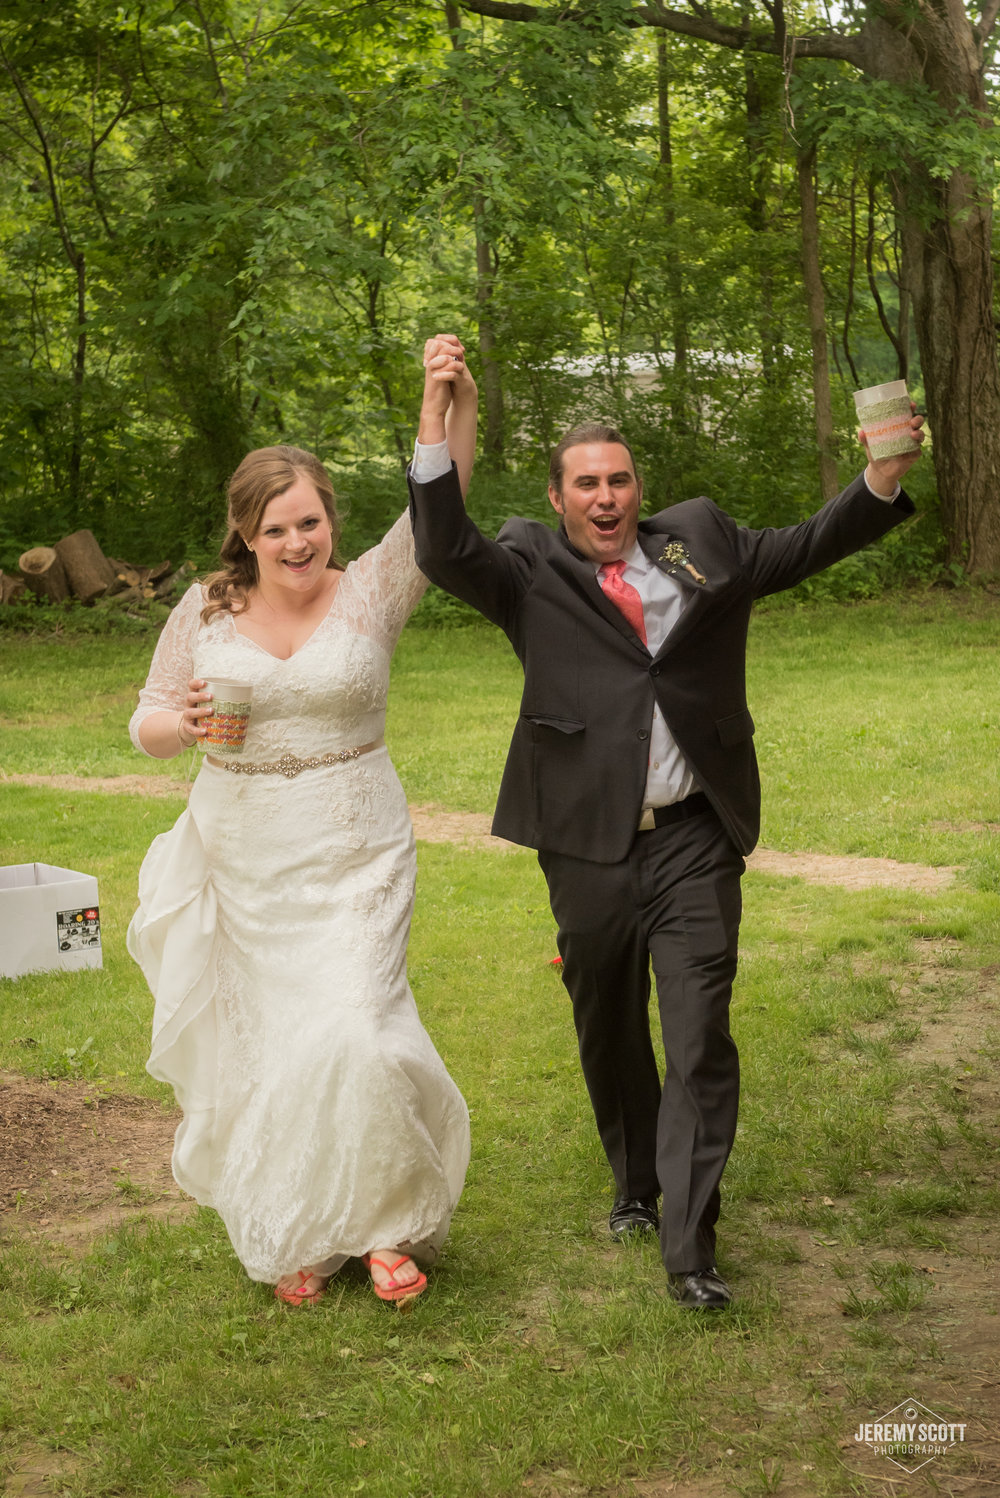 20150523_scottkristina_wedding_wm-5603-1.jpg